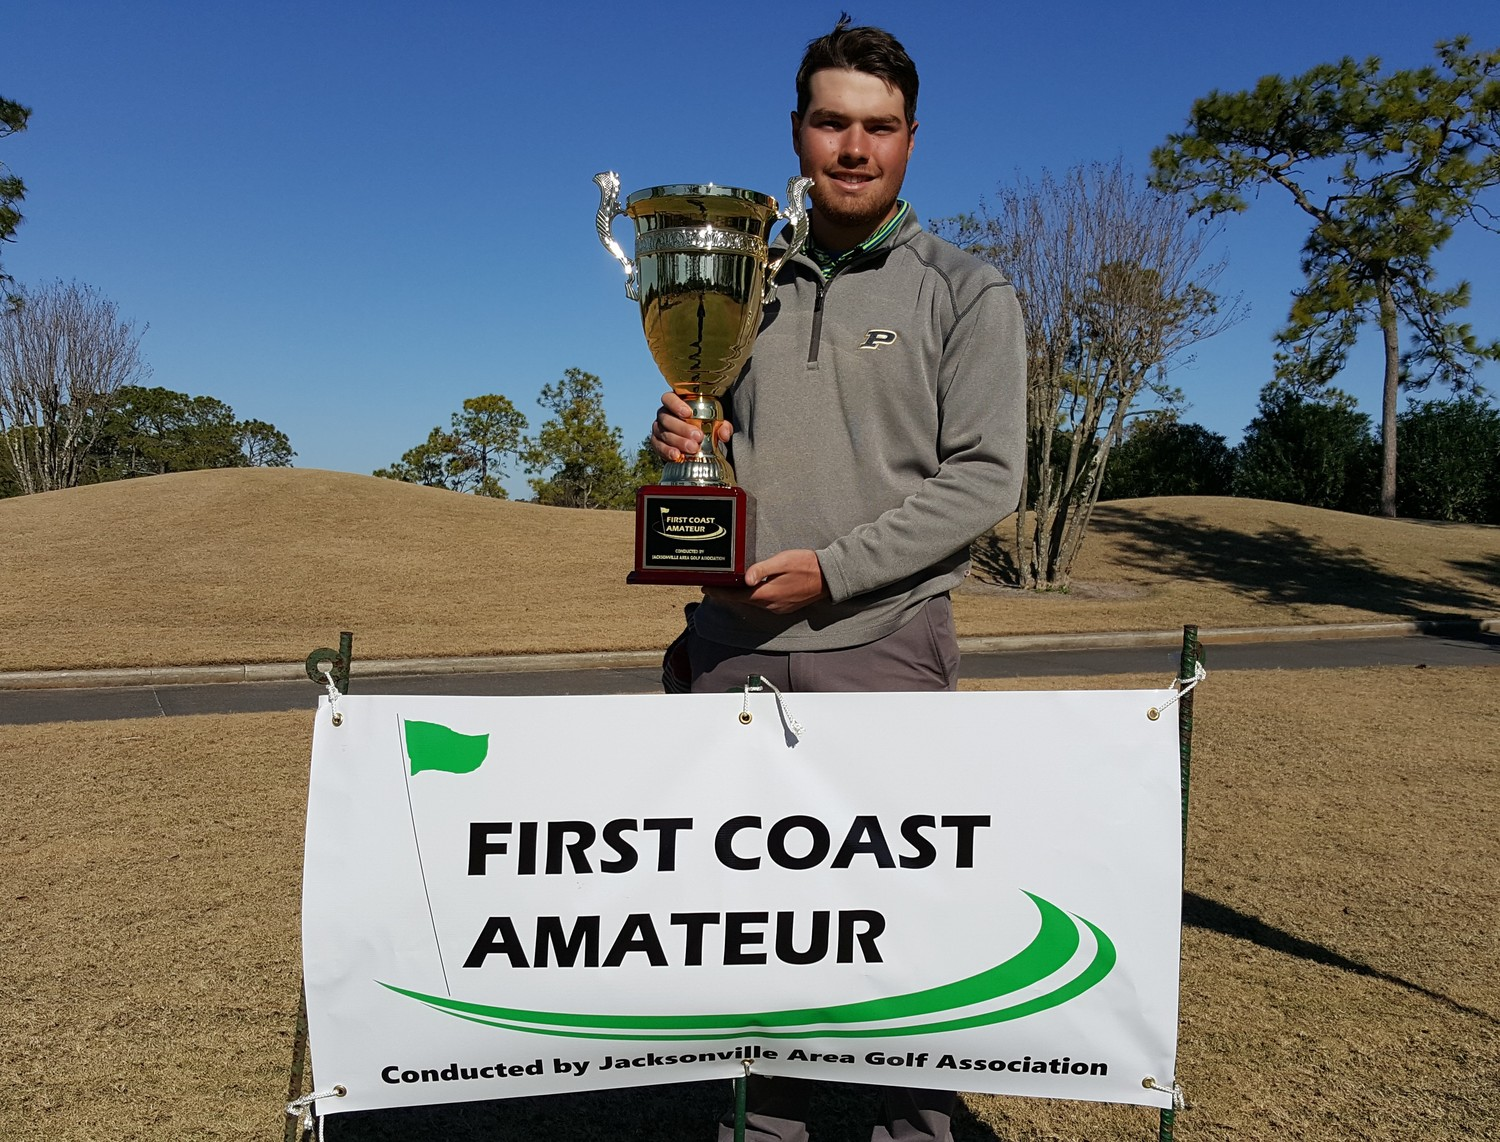 Defending First Coast Amateur champion Cole Bradley of Purdue University returns to the JAGA 2019 First Coast Amateur, which is being held Jan. 19-21 at Hidden Hills Golf Club.